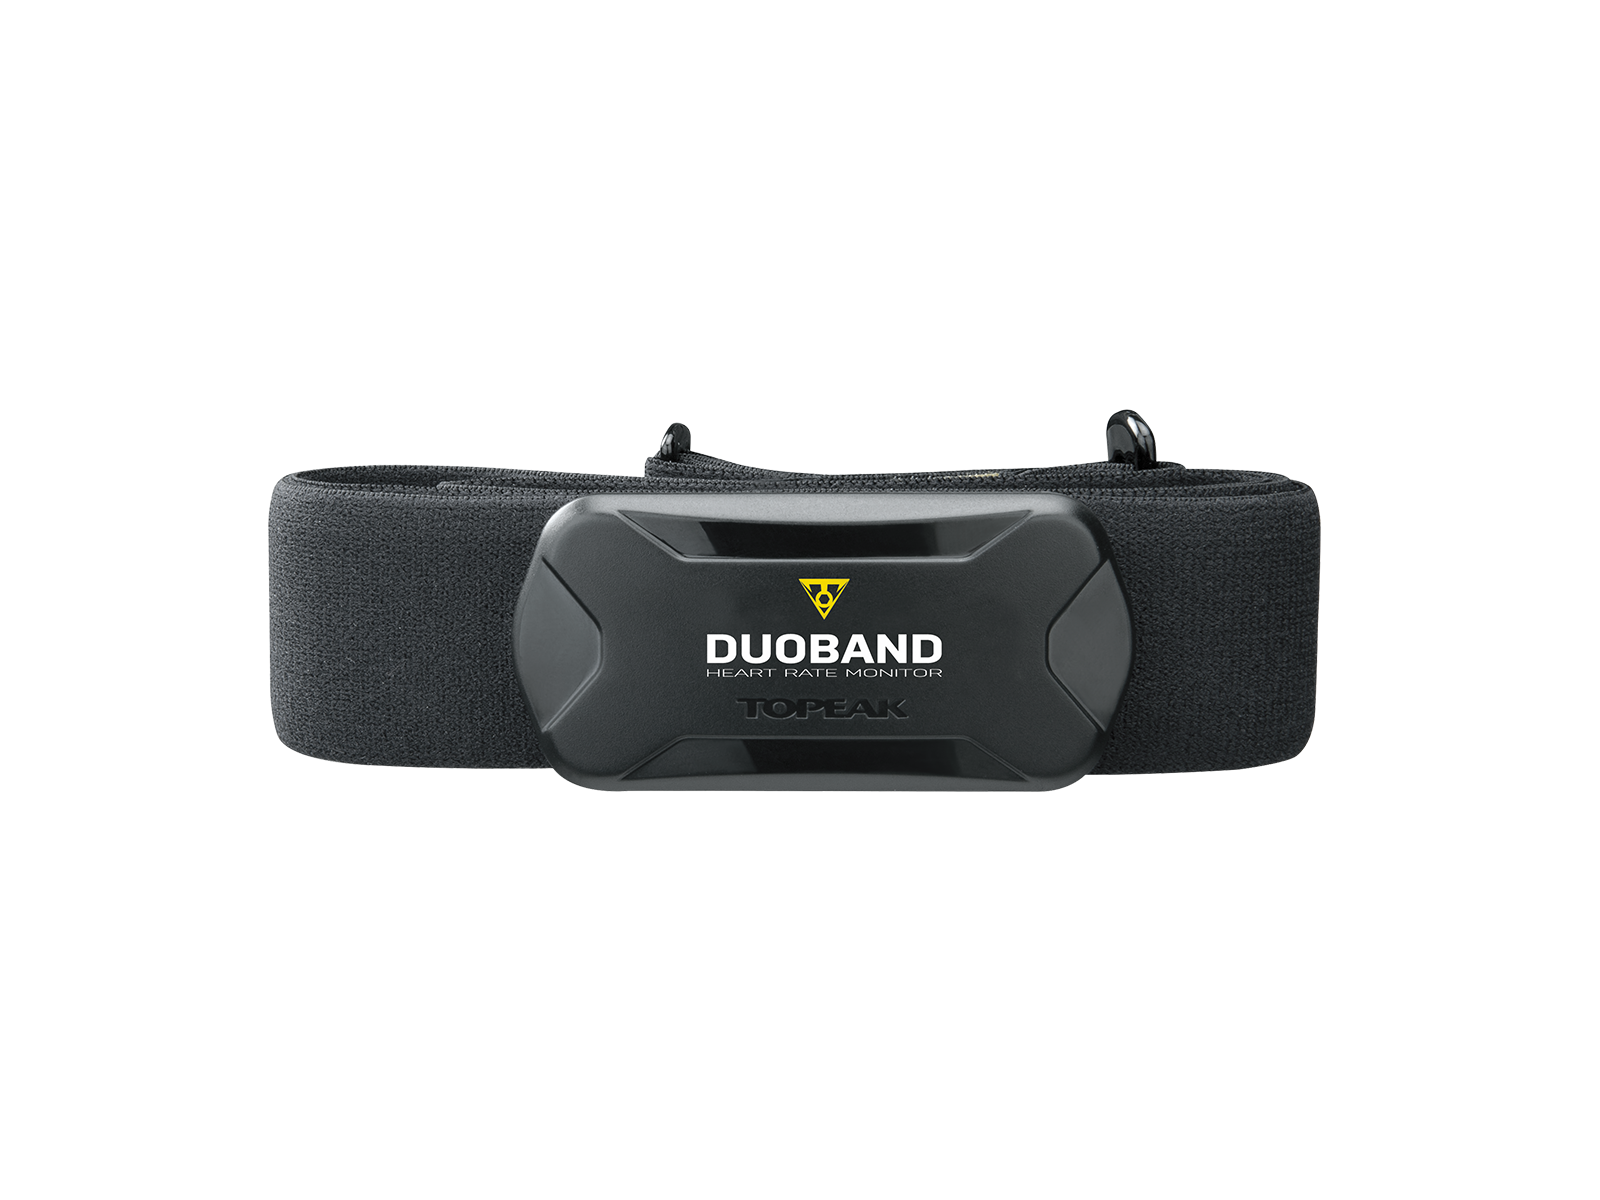 DUOBAND HEART RATE MONITOR